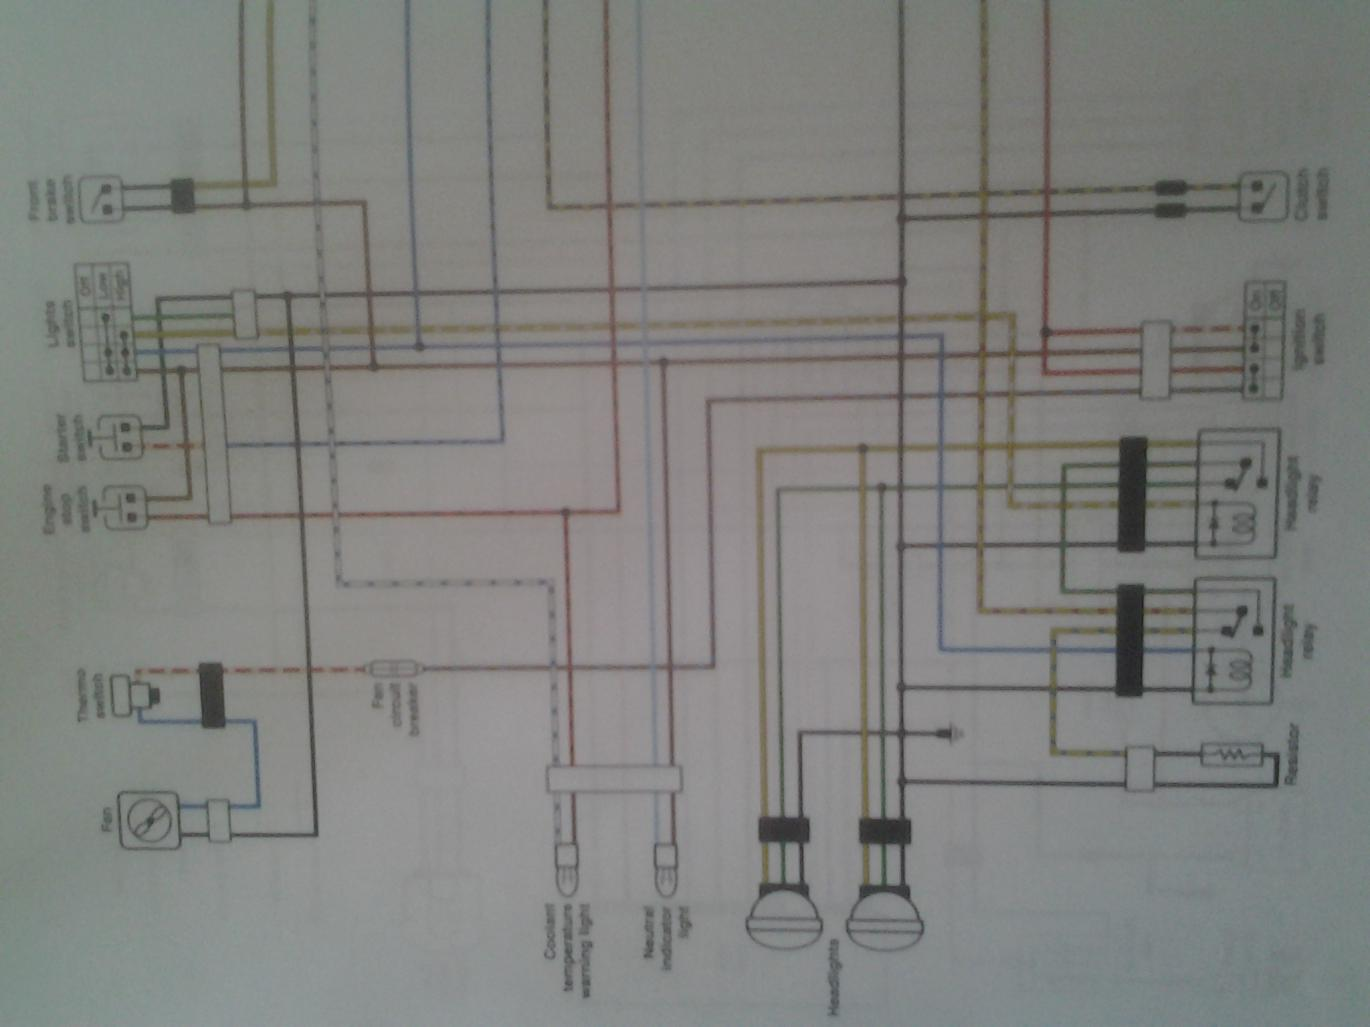 hight resolution of 07 yfz 450 wiring diagram 13 1 combatarms game de u20222000 yfz 450 wiring diagram